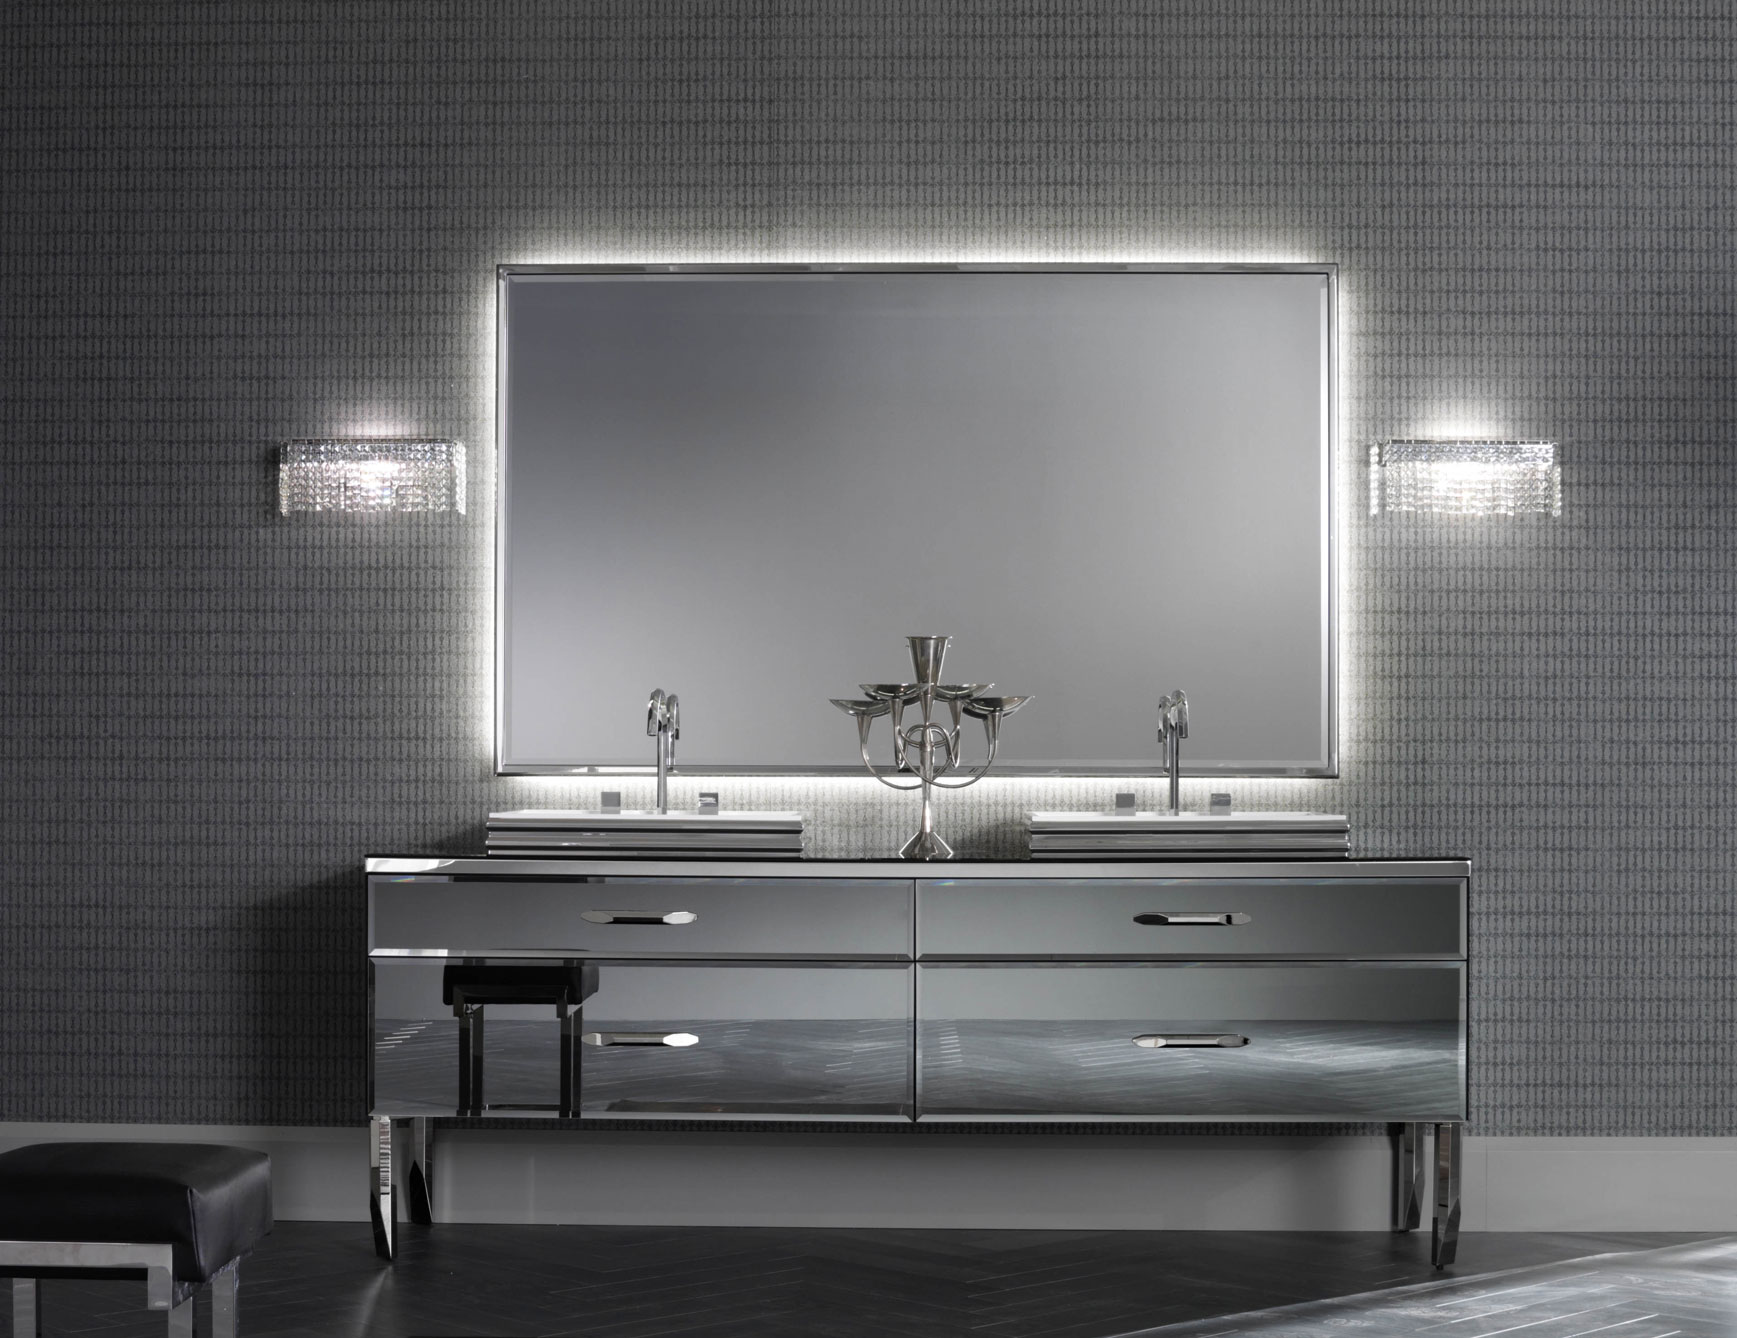 gray-wall-paint-mirror-without-frame-real-wood-rustic-natural-color-vanity-with-storage-drawers-ceramic-flooring-tile-wall-lamps-a-creating-option-for-designing-luxury-bathrooms